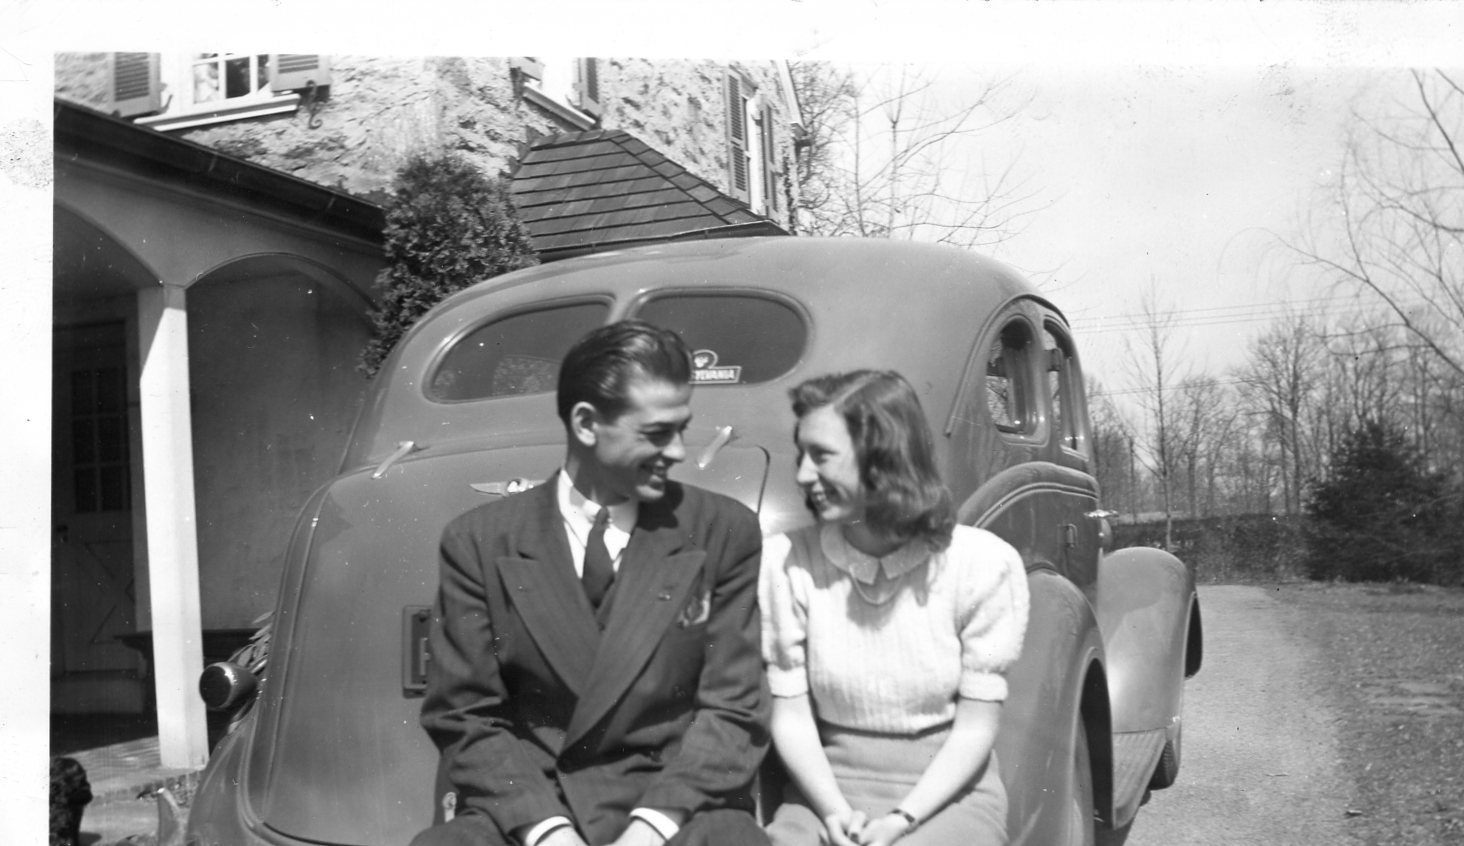 Harvey Garland Druin and Rhoda Estelle Field's engagement photo 23 March 1941